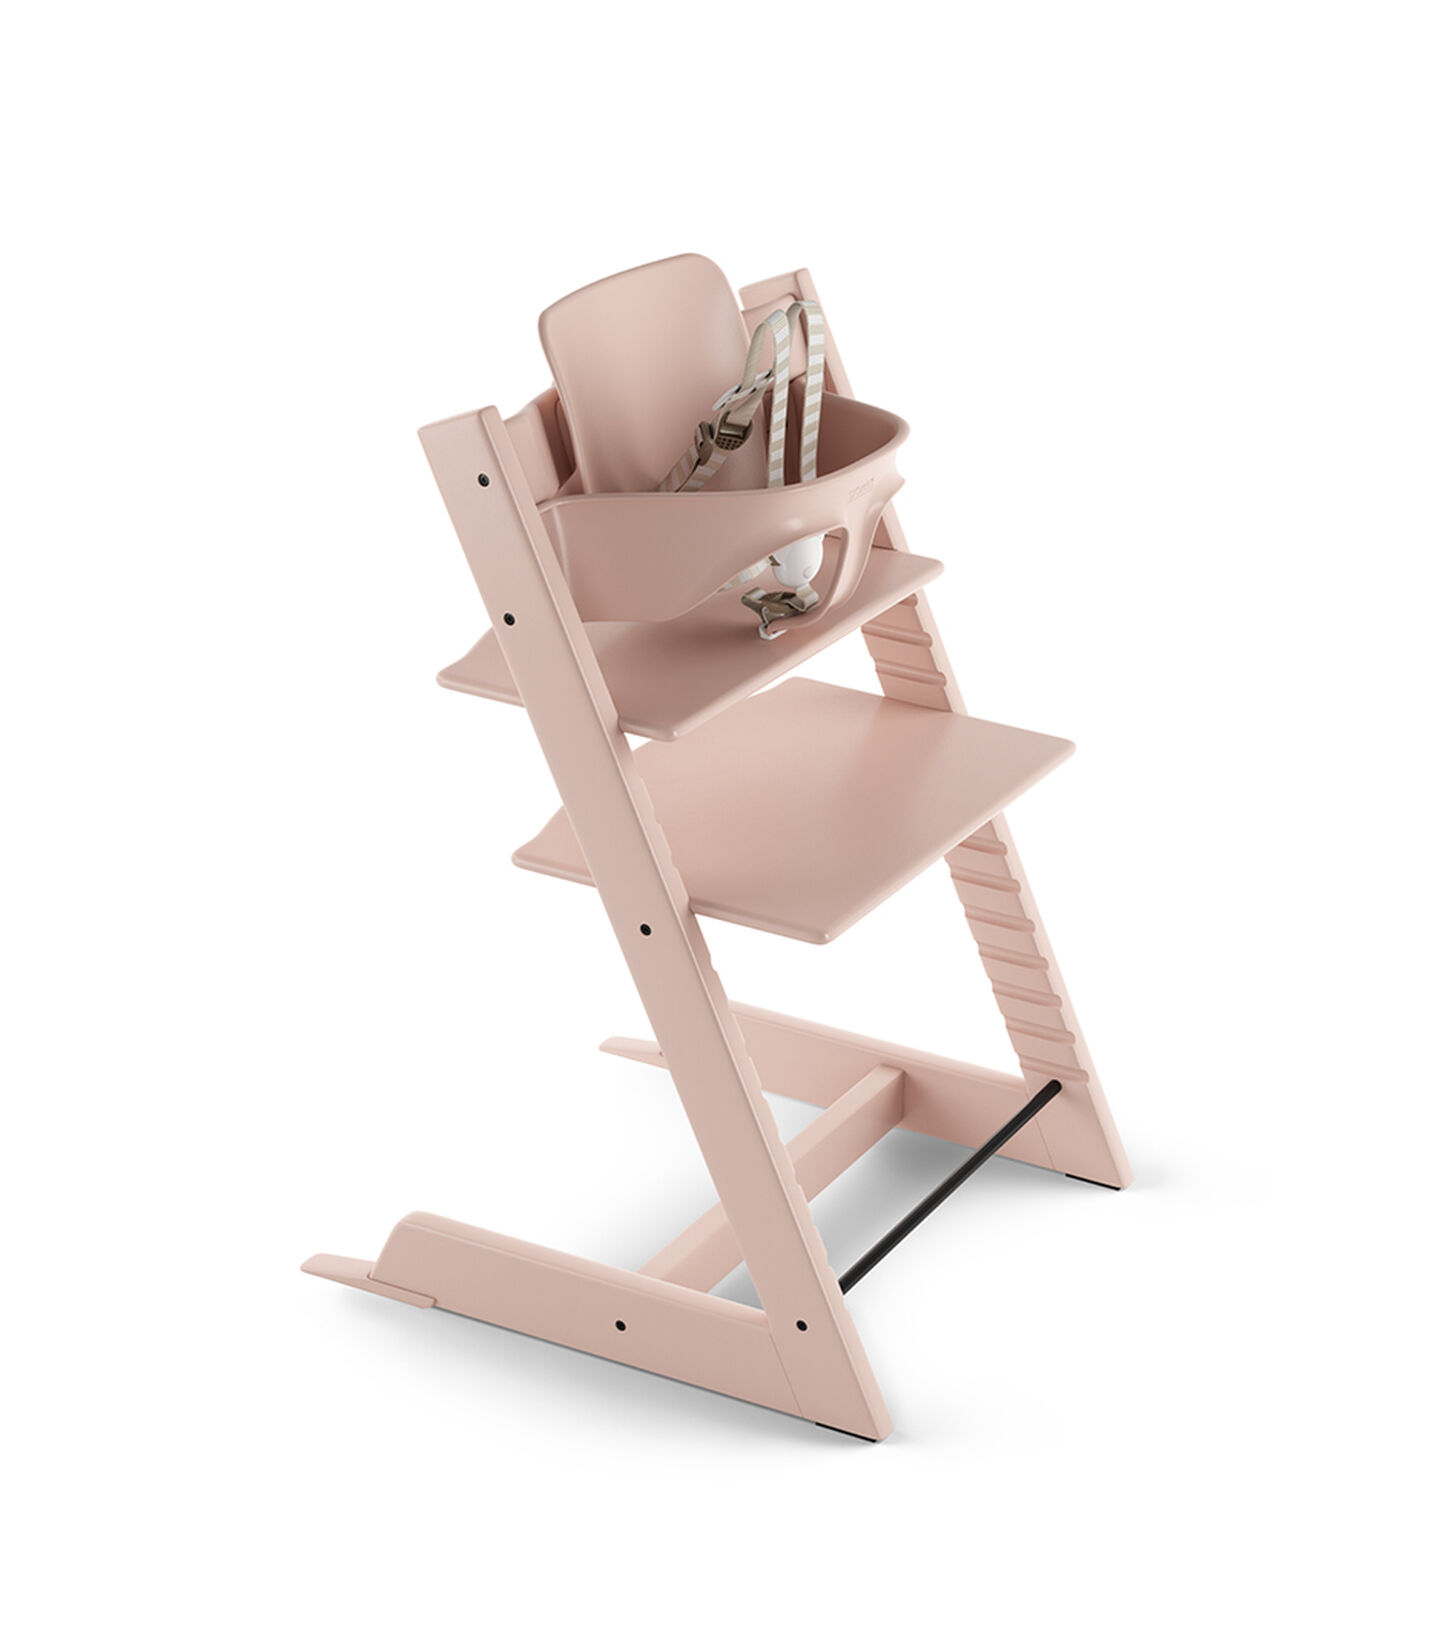 Tripp Trapp® Bundle High Chair US 18 Serene Pink, Serene Pink, mainview view 1